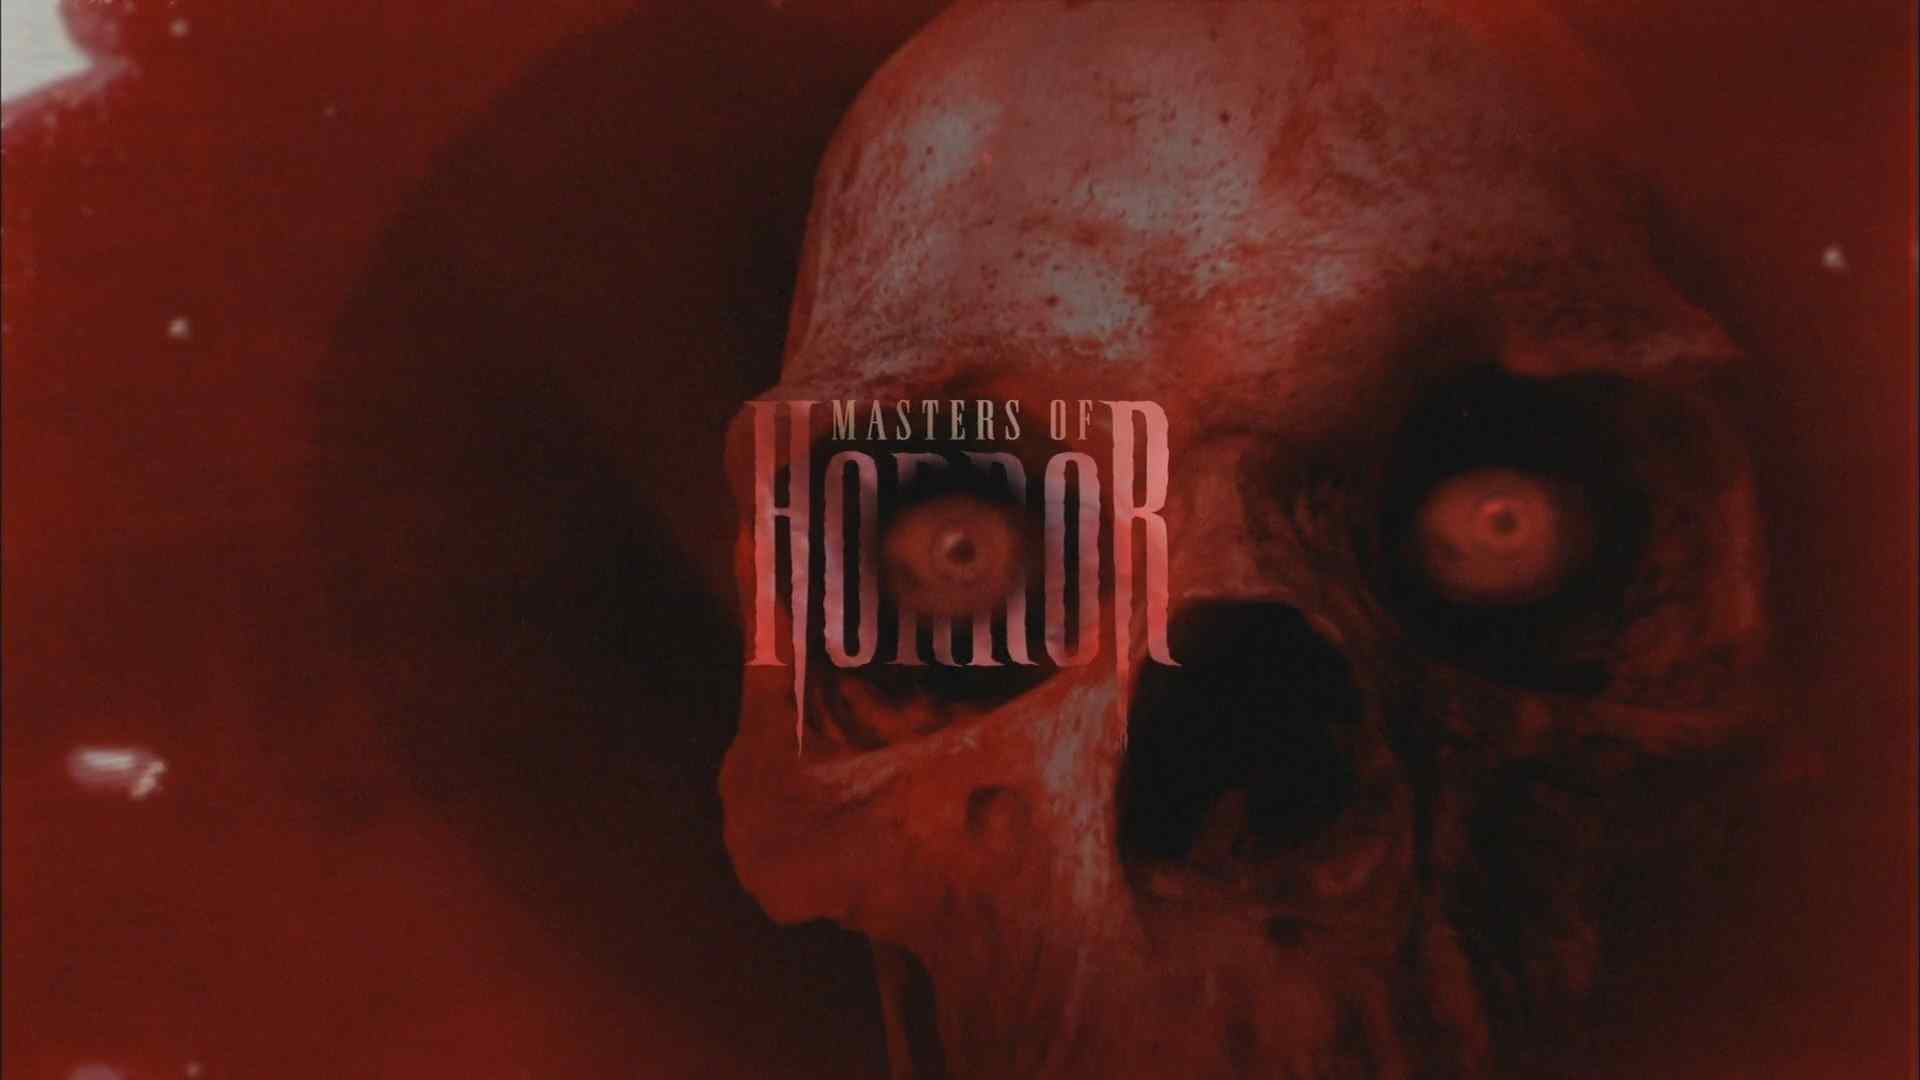 masters-of-horror-logo